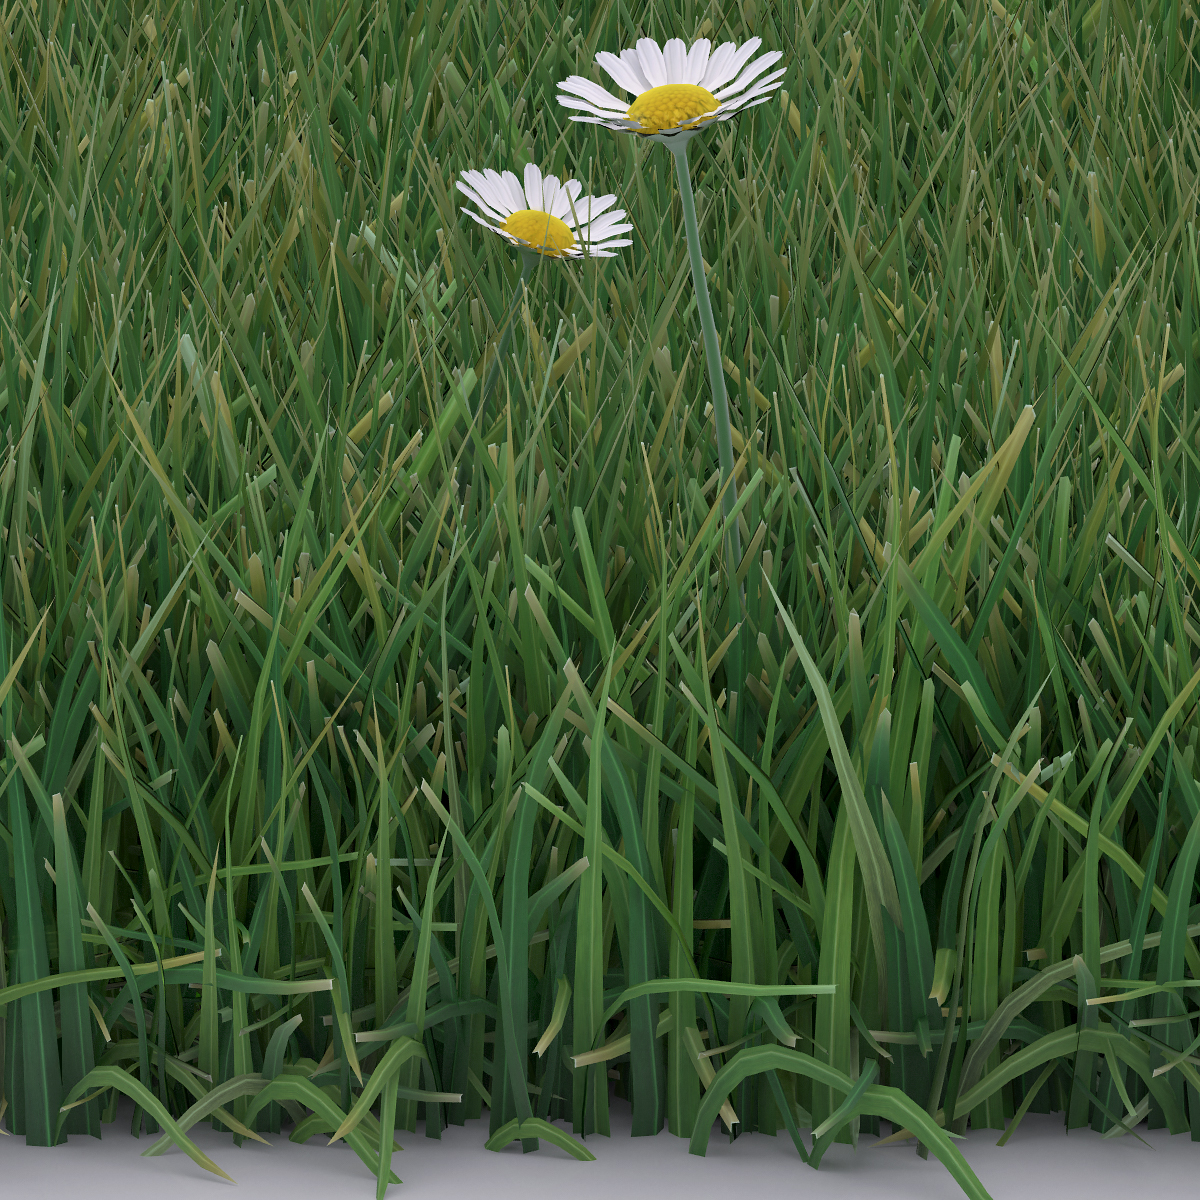 Detail Virtual Flowers and Grass 001 - 2018 - Virtual Flowers and Grass